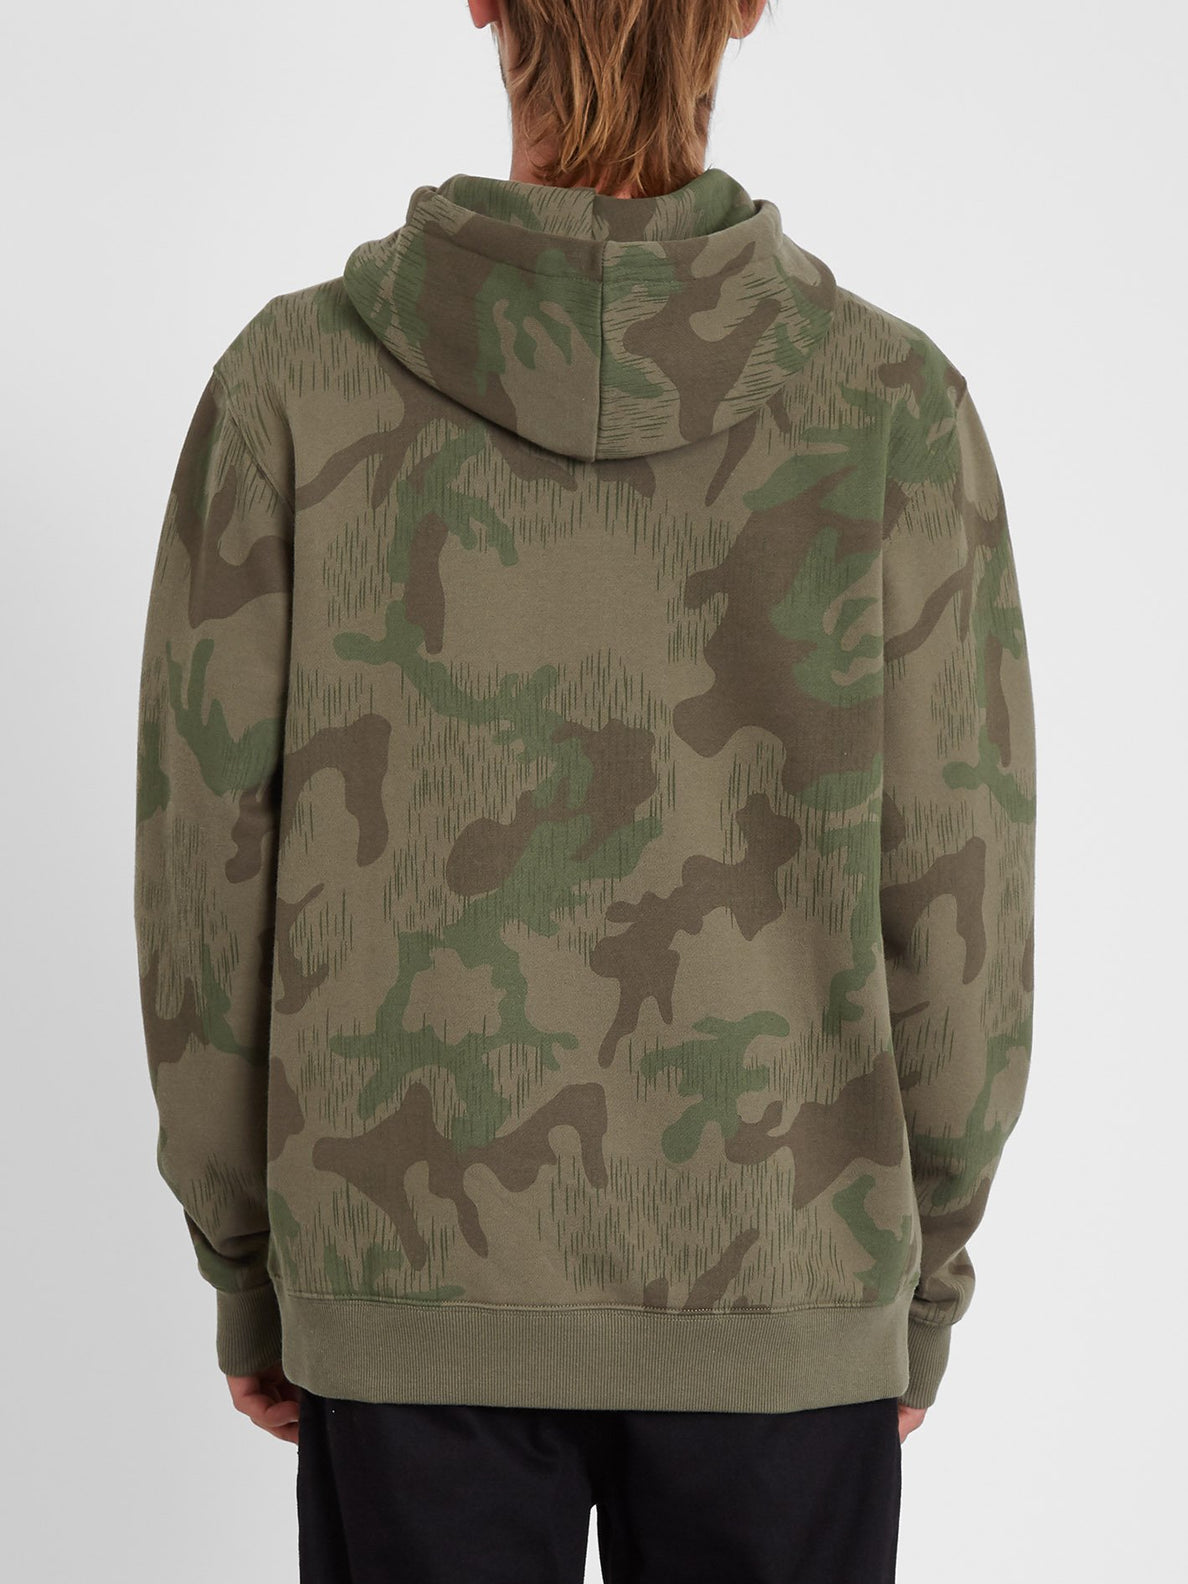 Take Warning Hoodie - CAMOUFLAGE